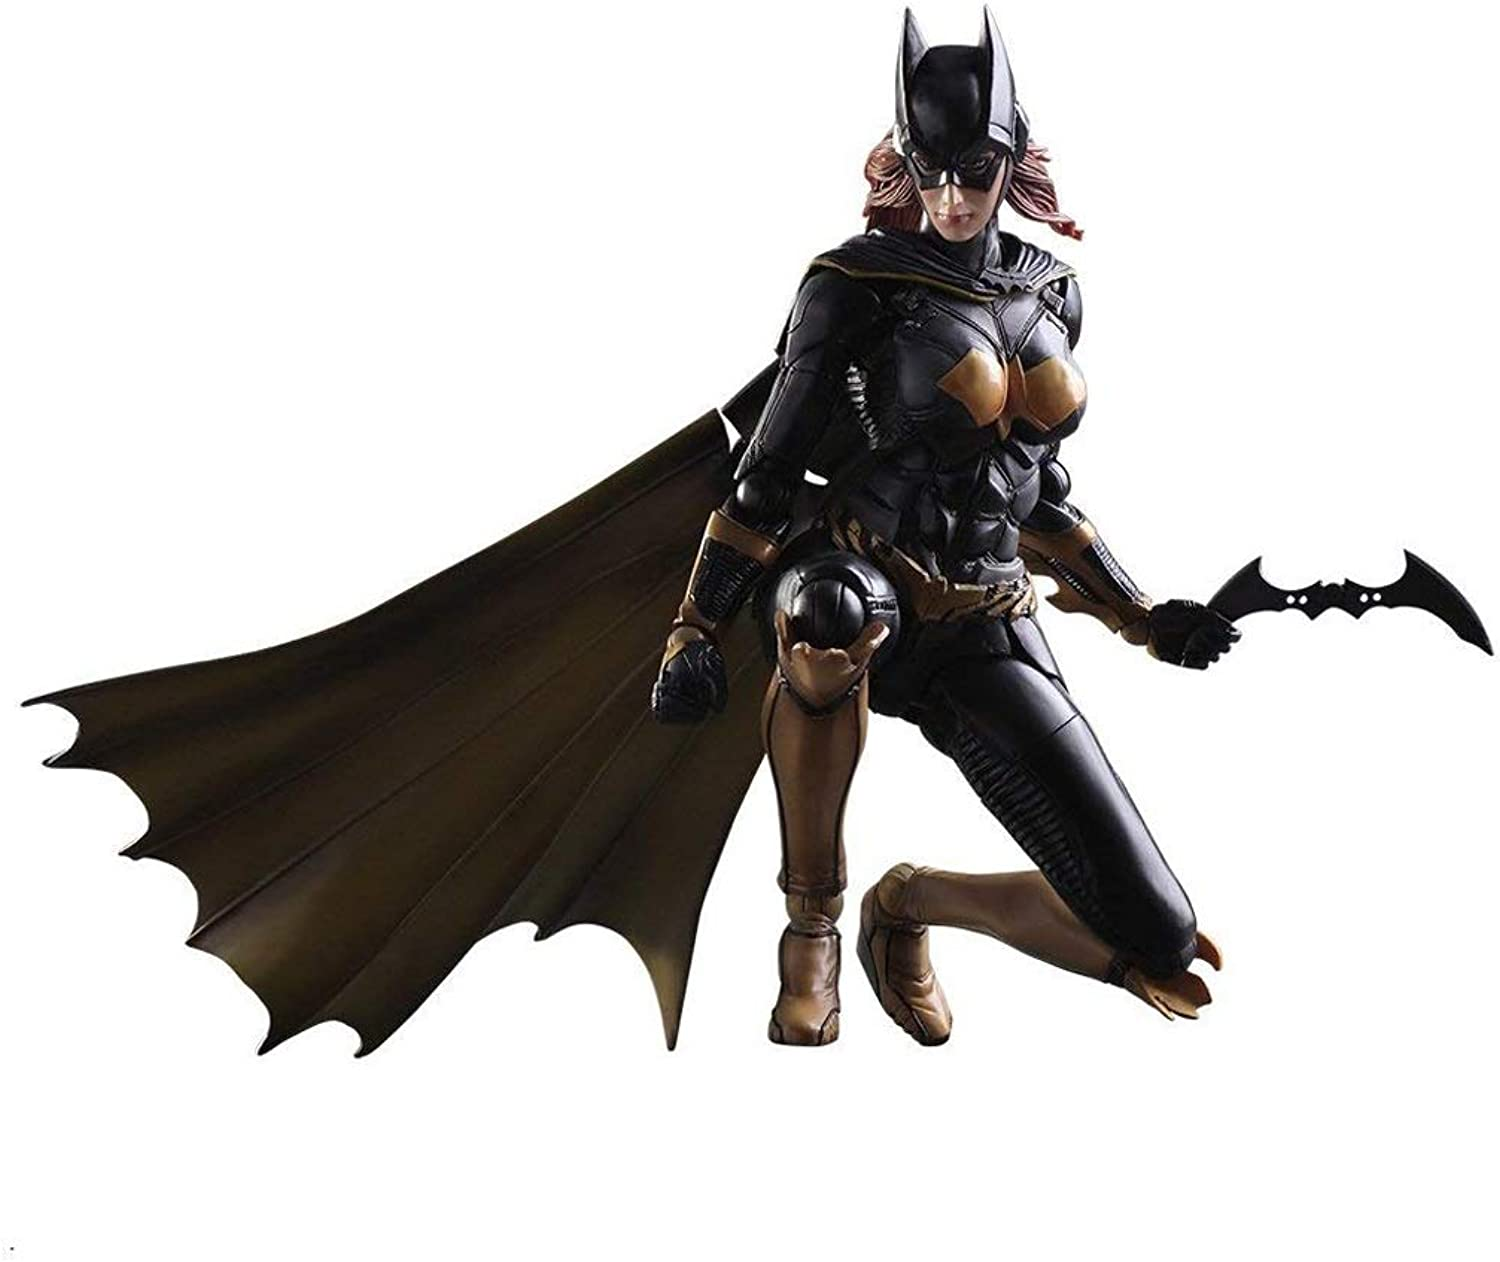 Siyushop Bat Hero Play Arts Kai Action Figure  Hero Action Figure And Weapon Decoration  26CM